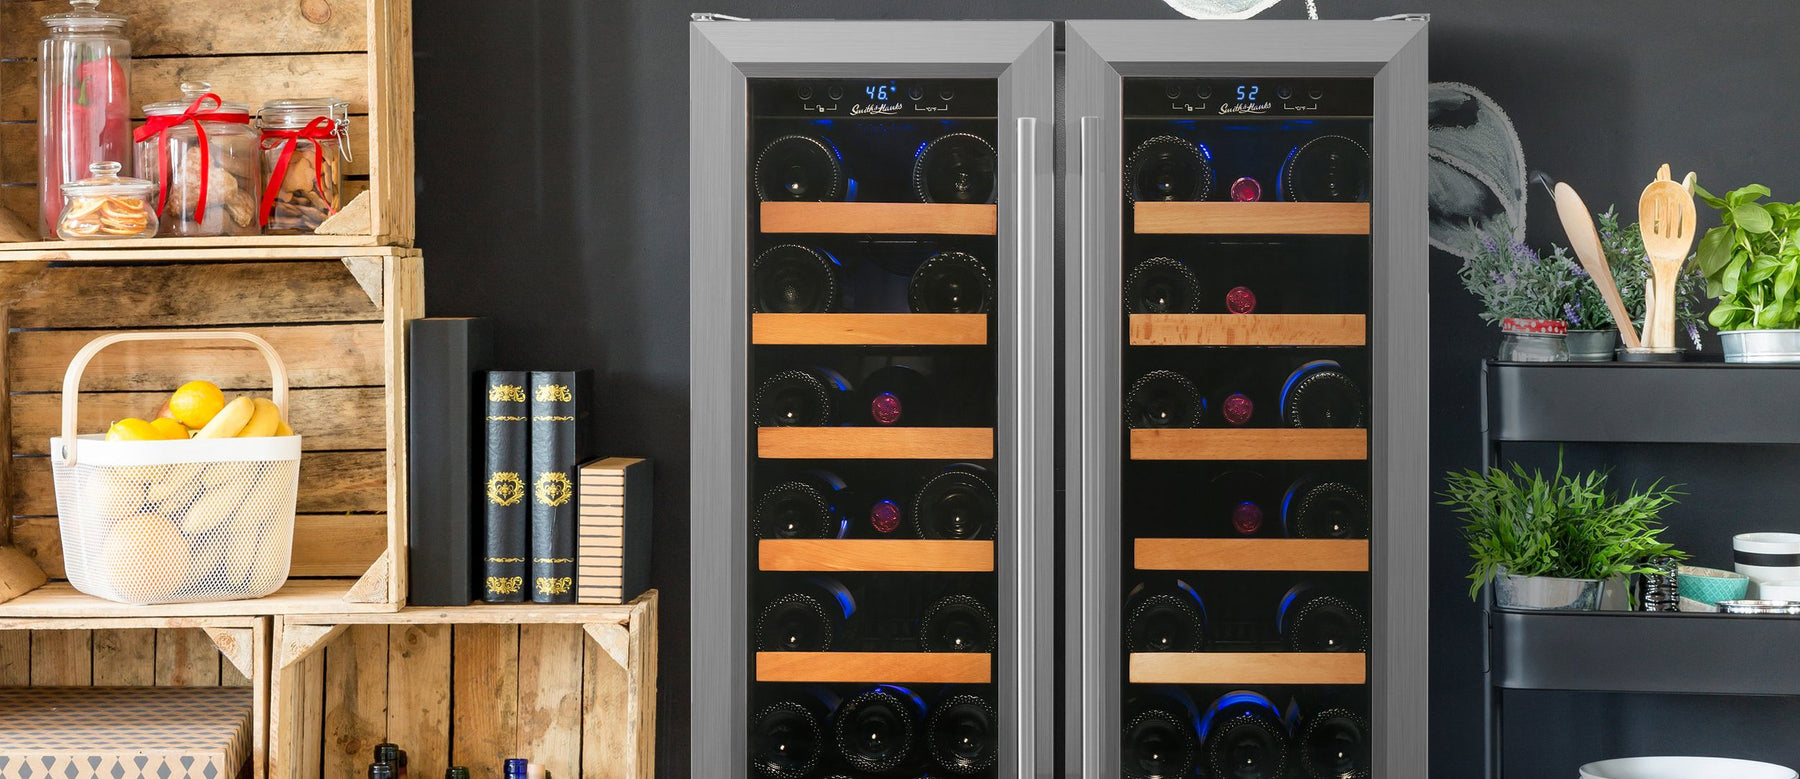 The Ultimate Wine Cooler Buying Guide: How to Pick the Perfect Wine Fridge